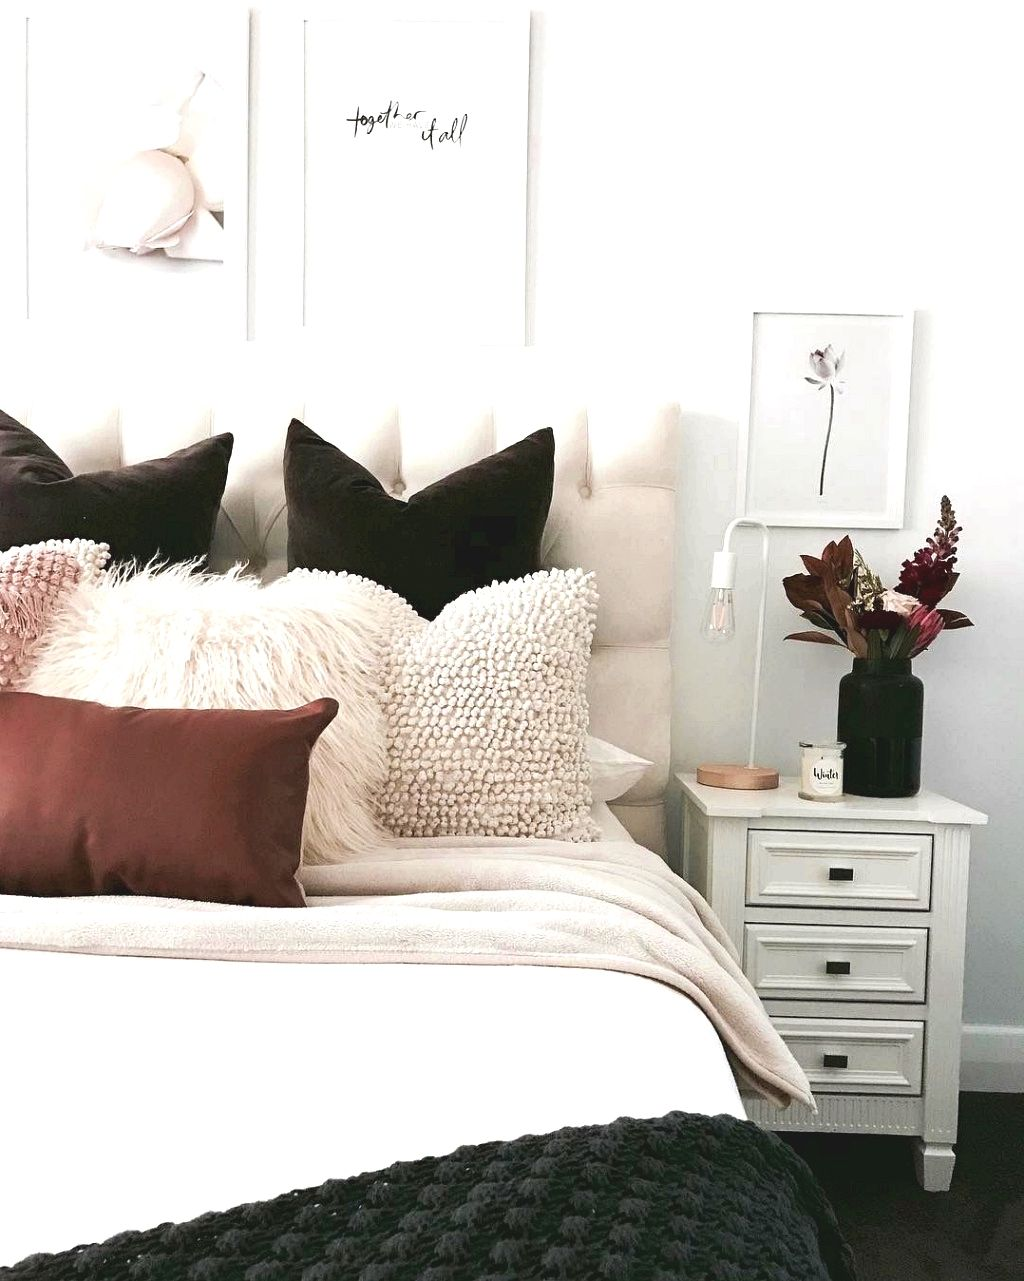 Bedroom Decor. The Hue Scheme Is Imperative When Beginning A Project On The  Room With